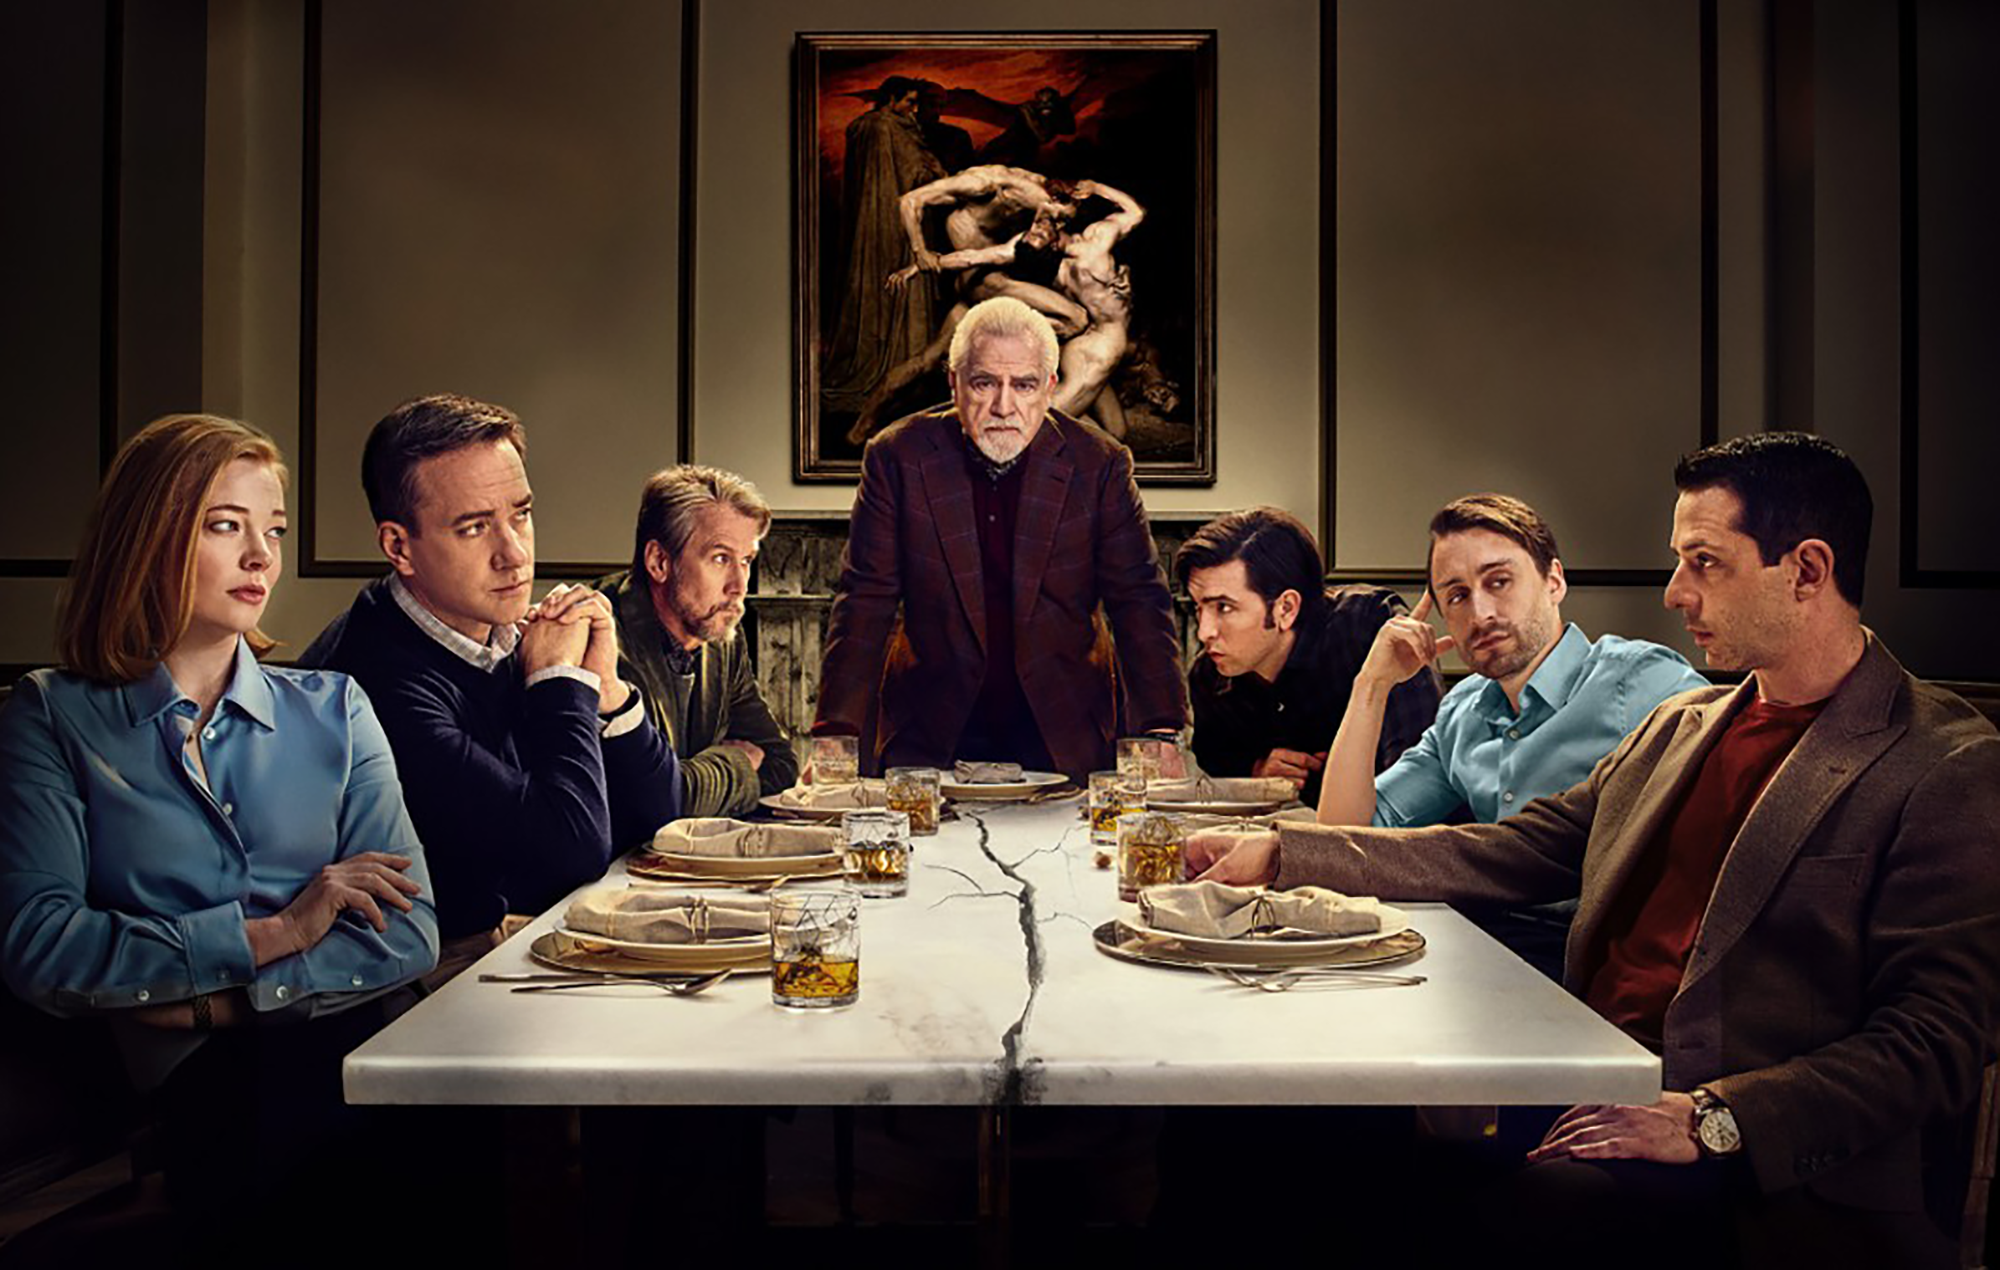 TV SERIES – SUCCESSION